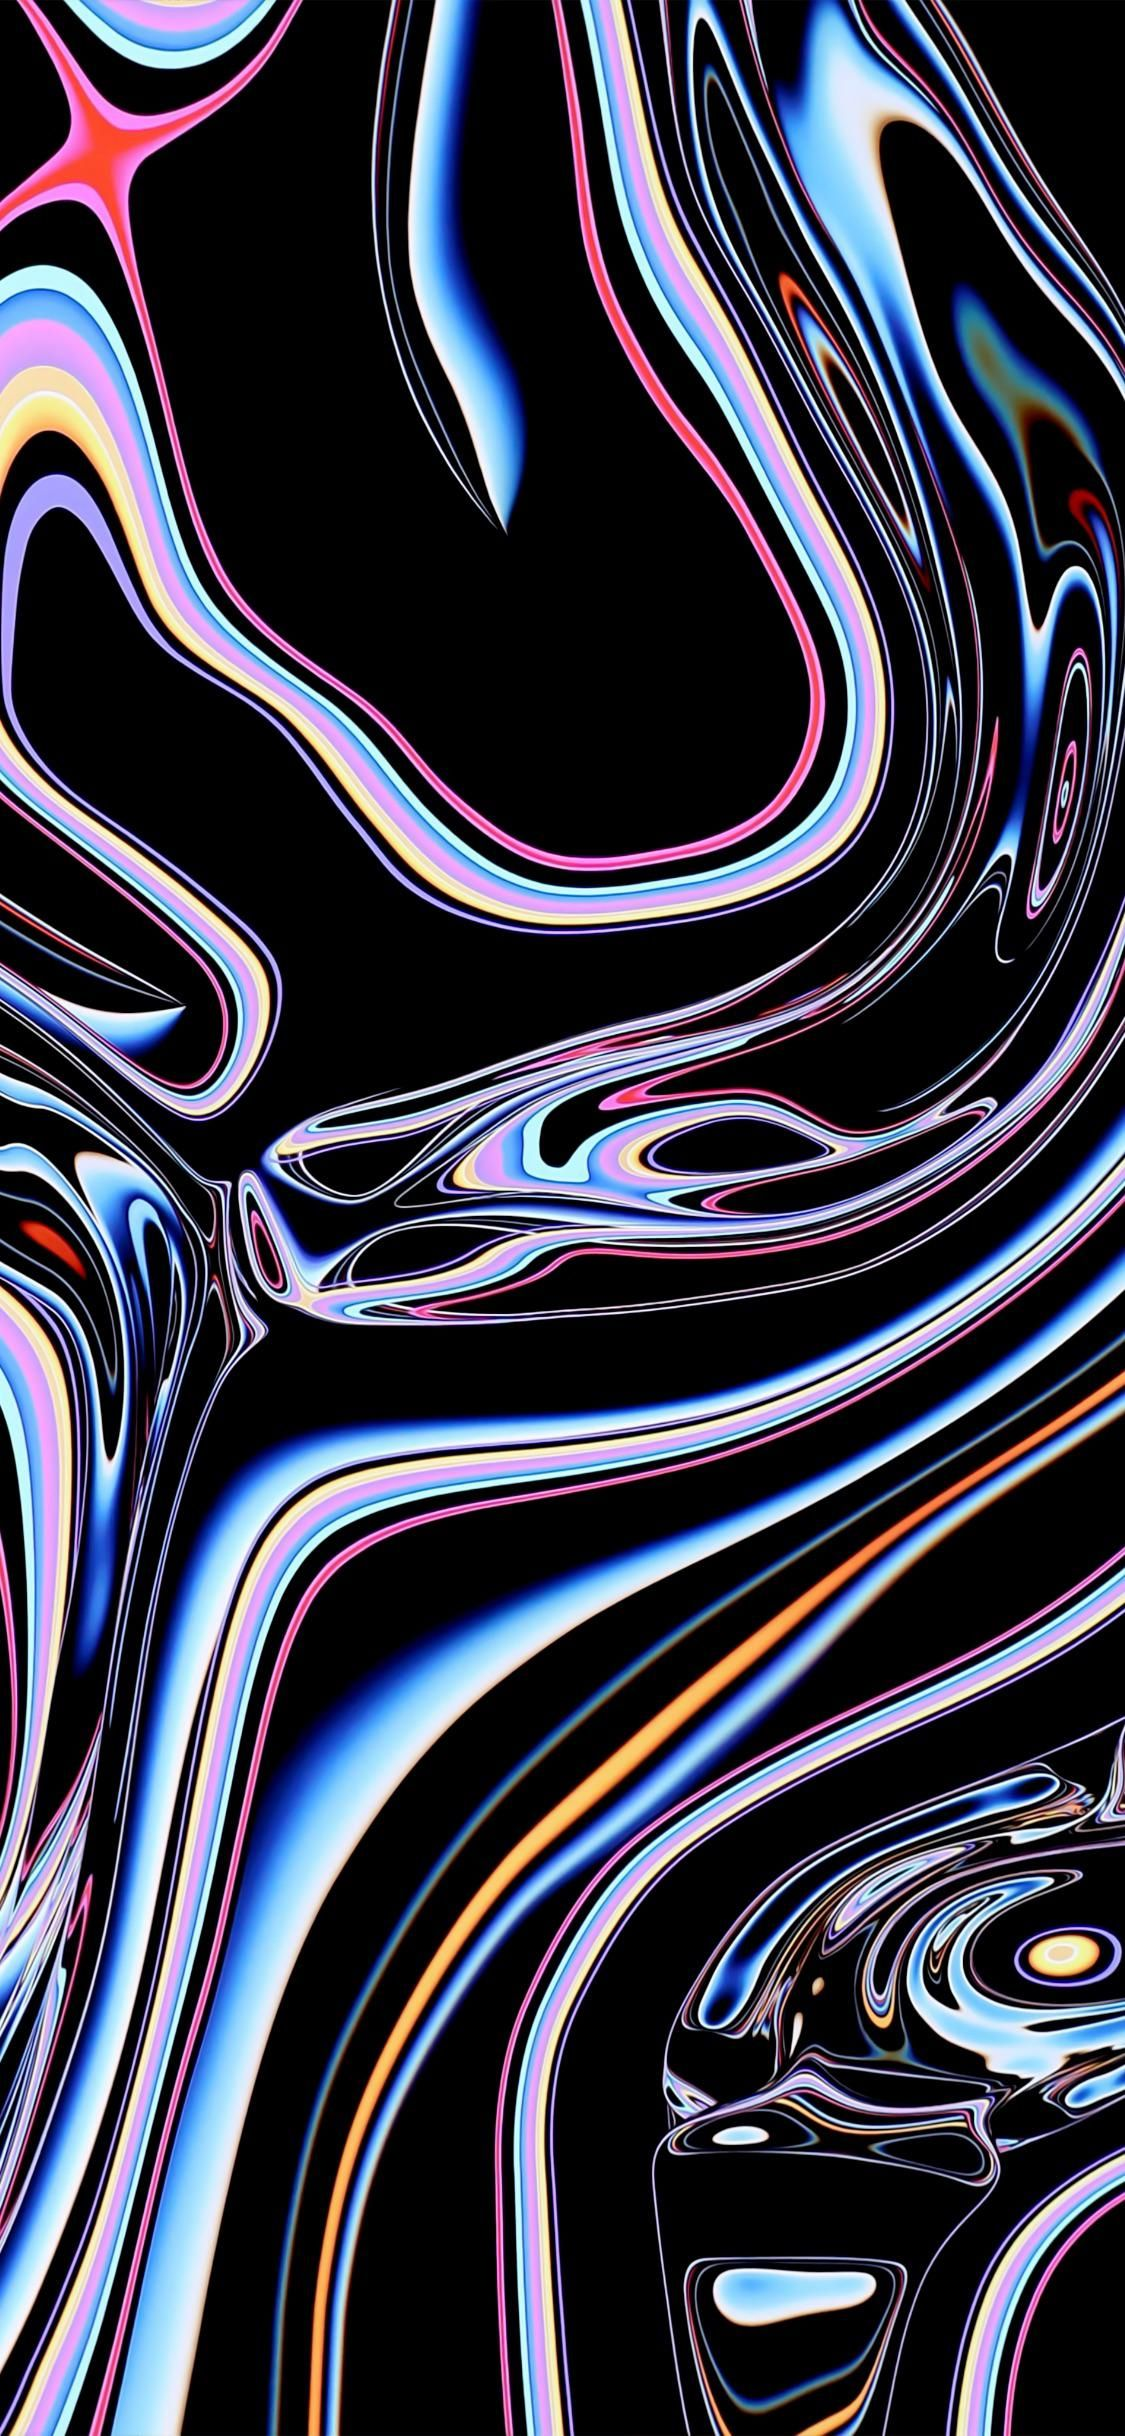 Mac Pro Wallpaper iPhone X in 2020 Iphone wallpaper hd original 1125x2436